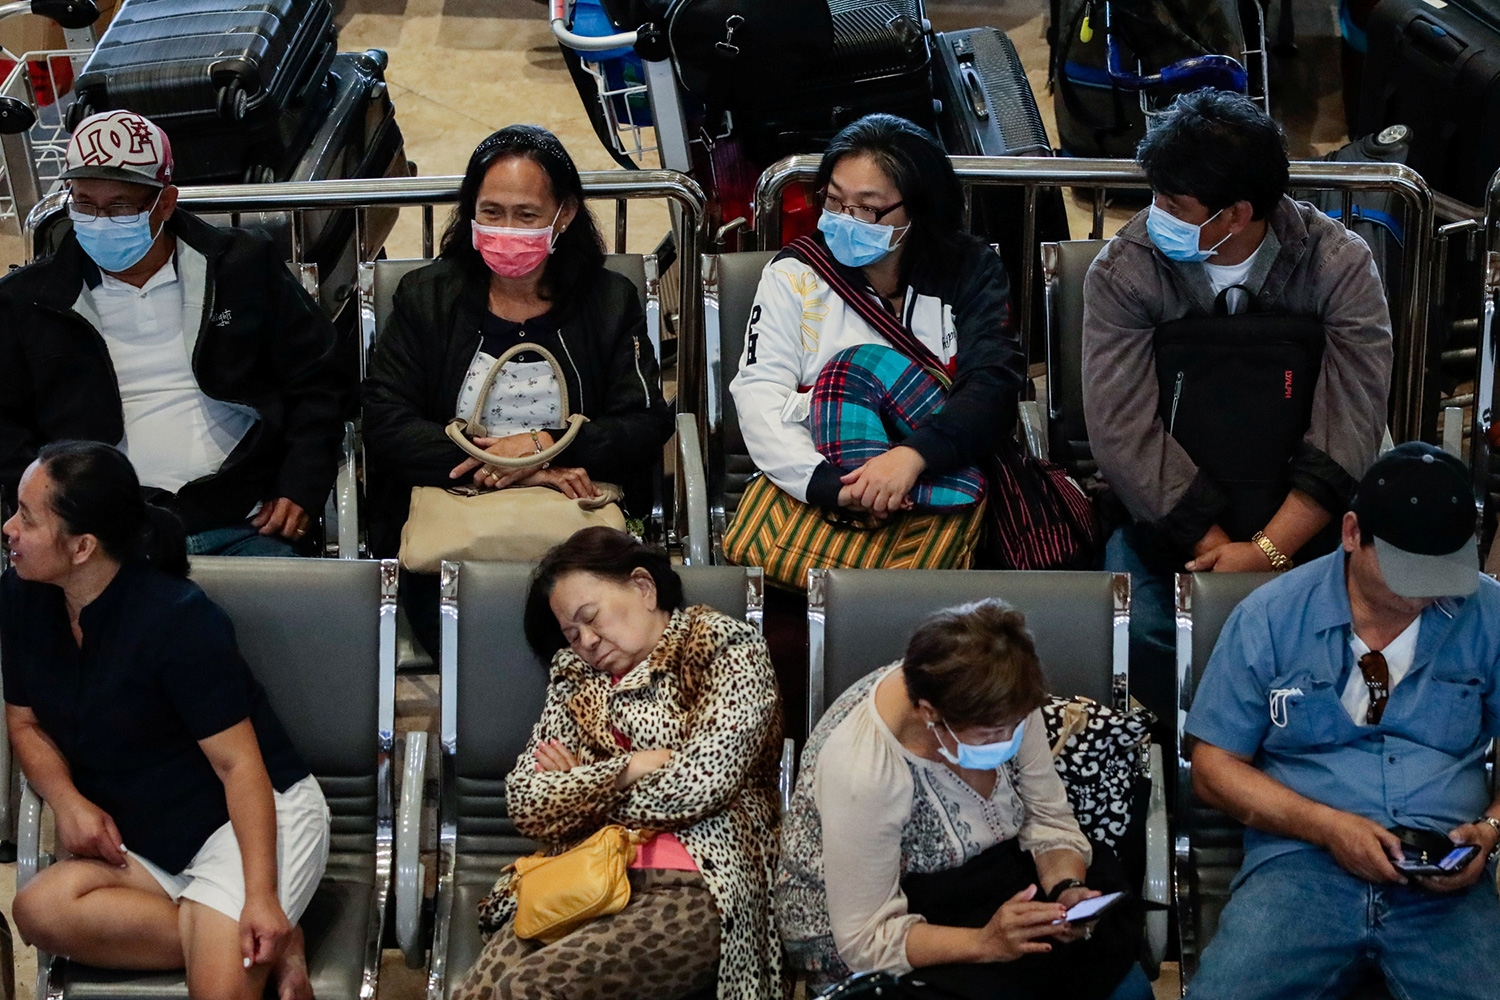 The photo shows people sacked out in airport chairs, some asleep, some on their cell phones, almost all wearing masks.